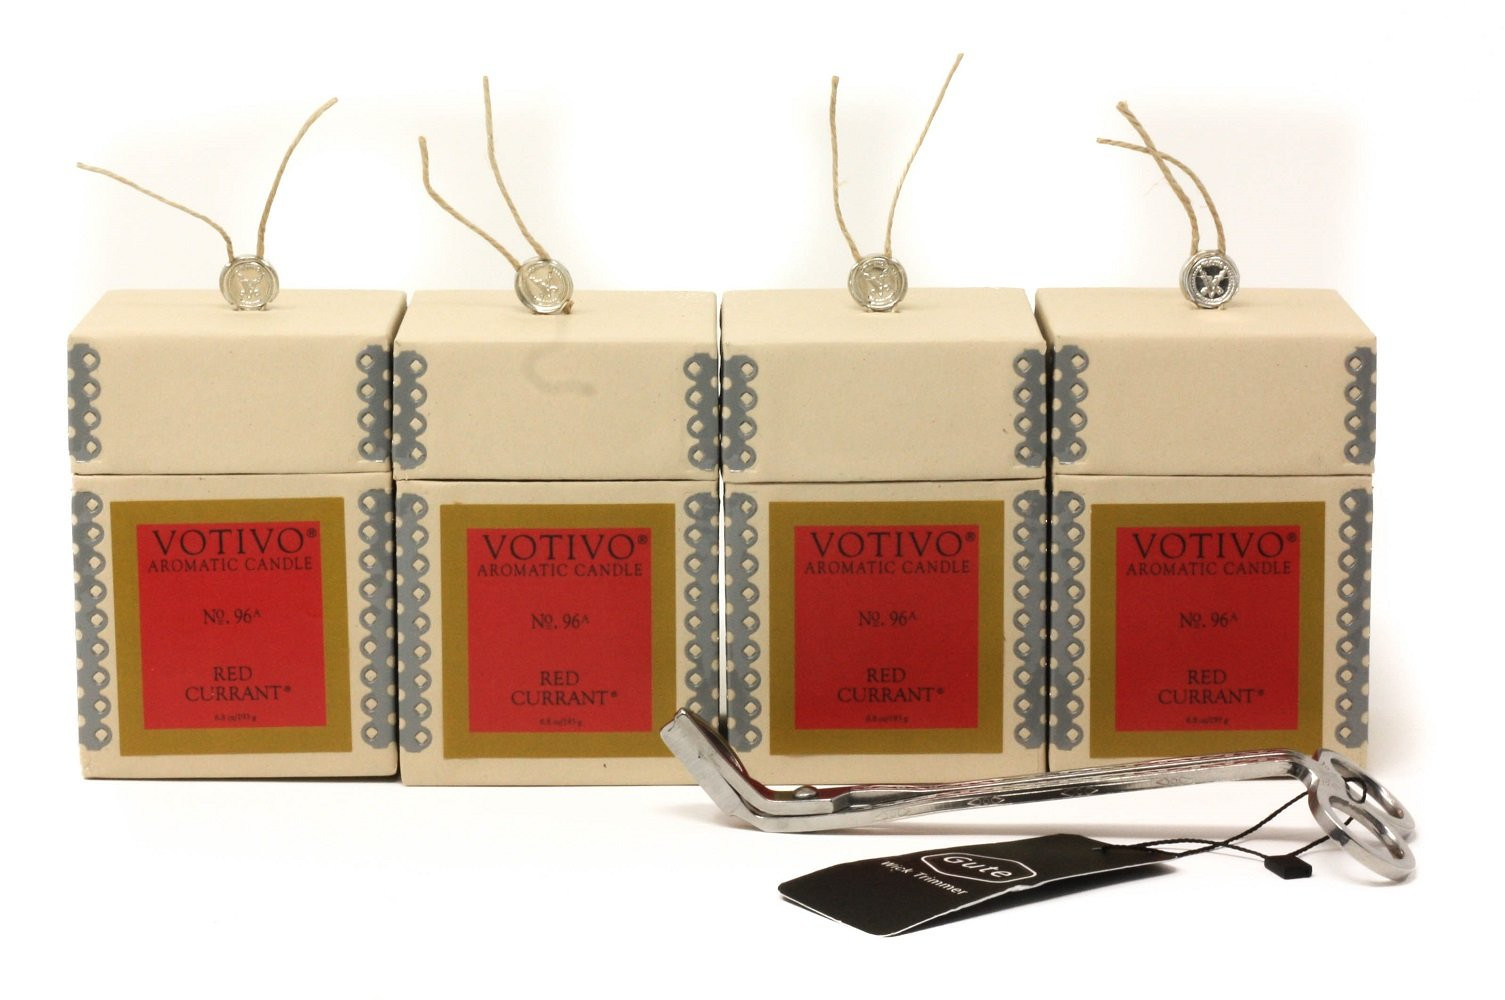 Gute Votivo Red Currant Aromatic Candle 4 Pack Bundle with Wick Cutter (5 Items)